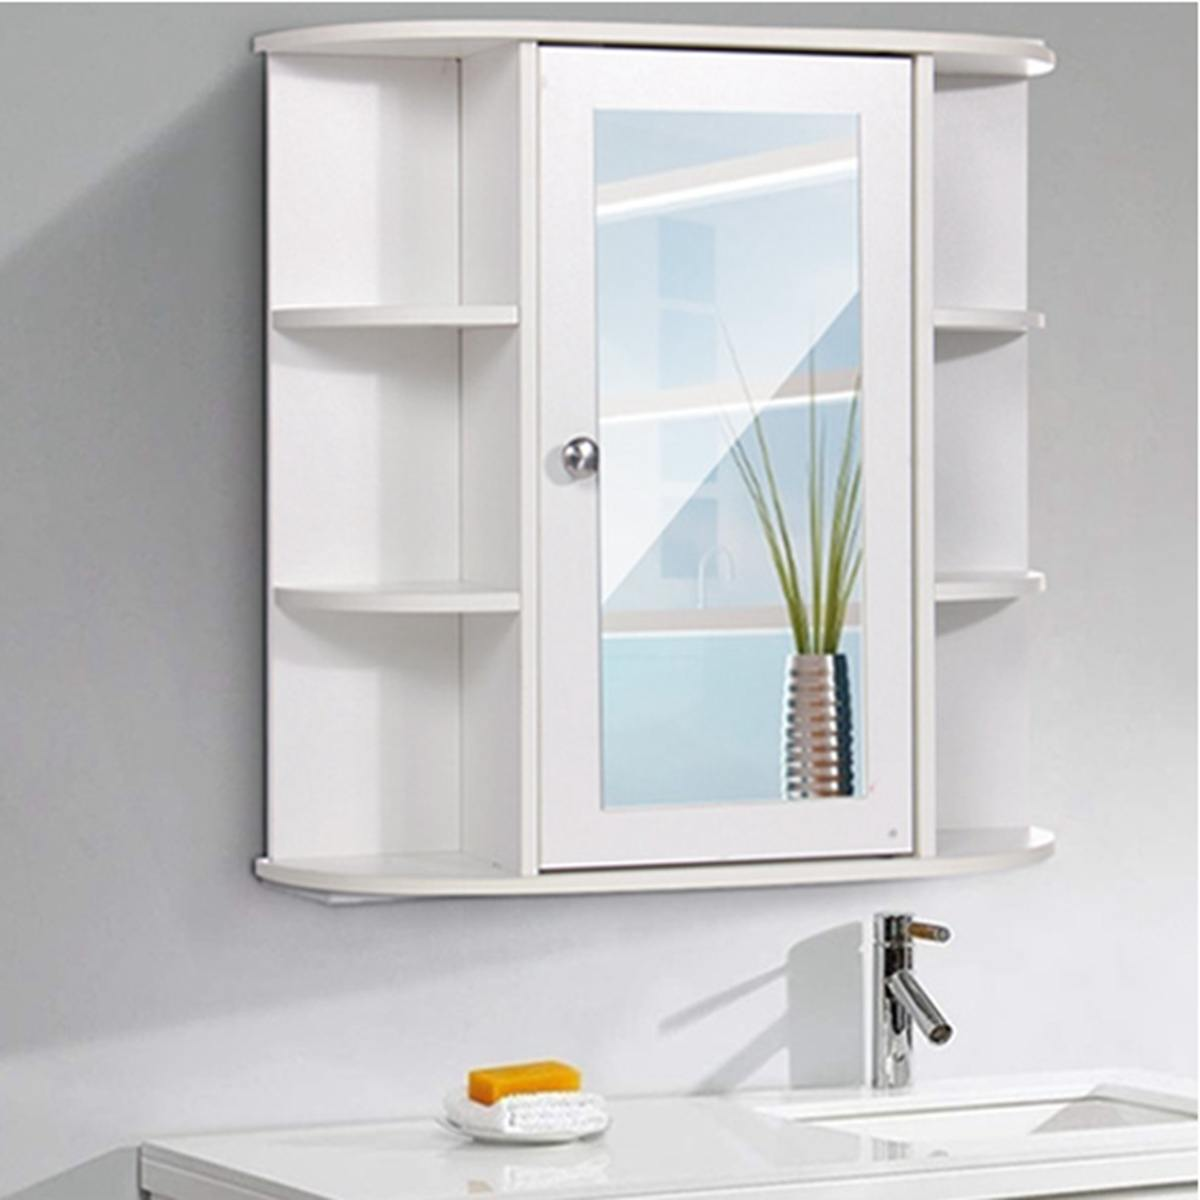 Bathroom Cabinet with Mirror 58x60x16.5cm Home Wall Mounted Bathroom Toilet Furniture Cabinet Cupboard Shelf Cosmetic Storager